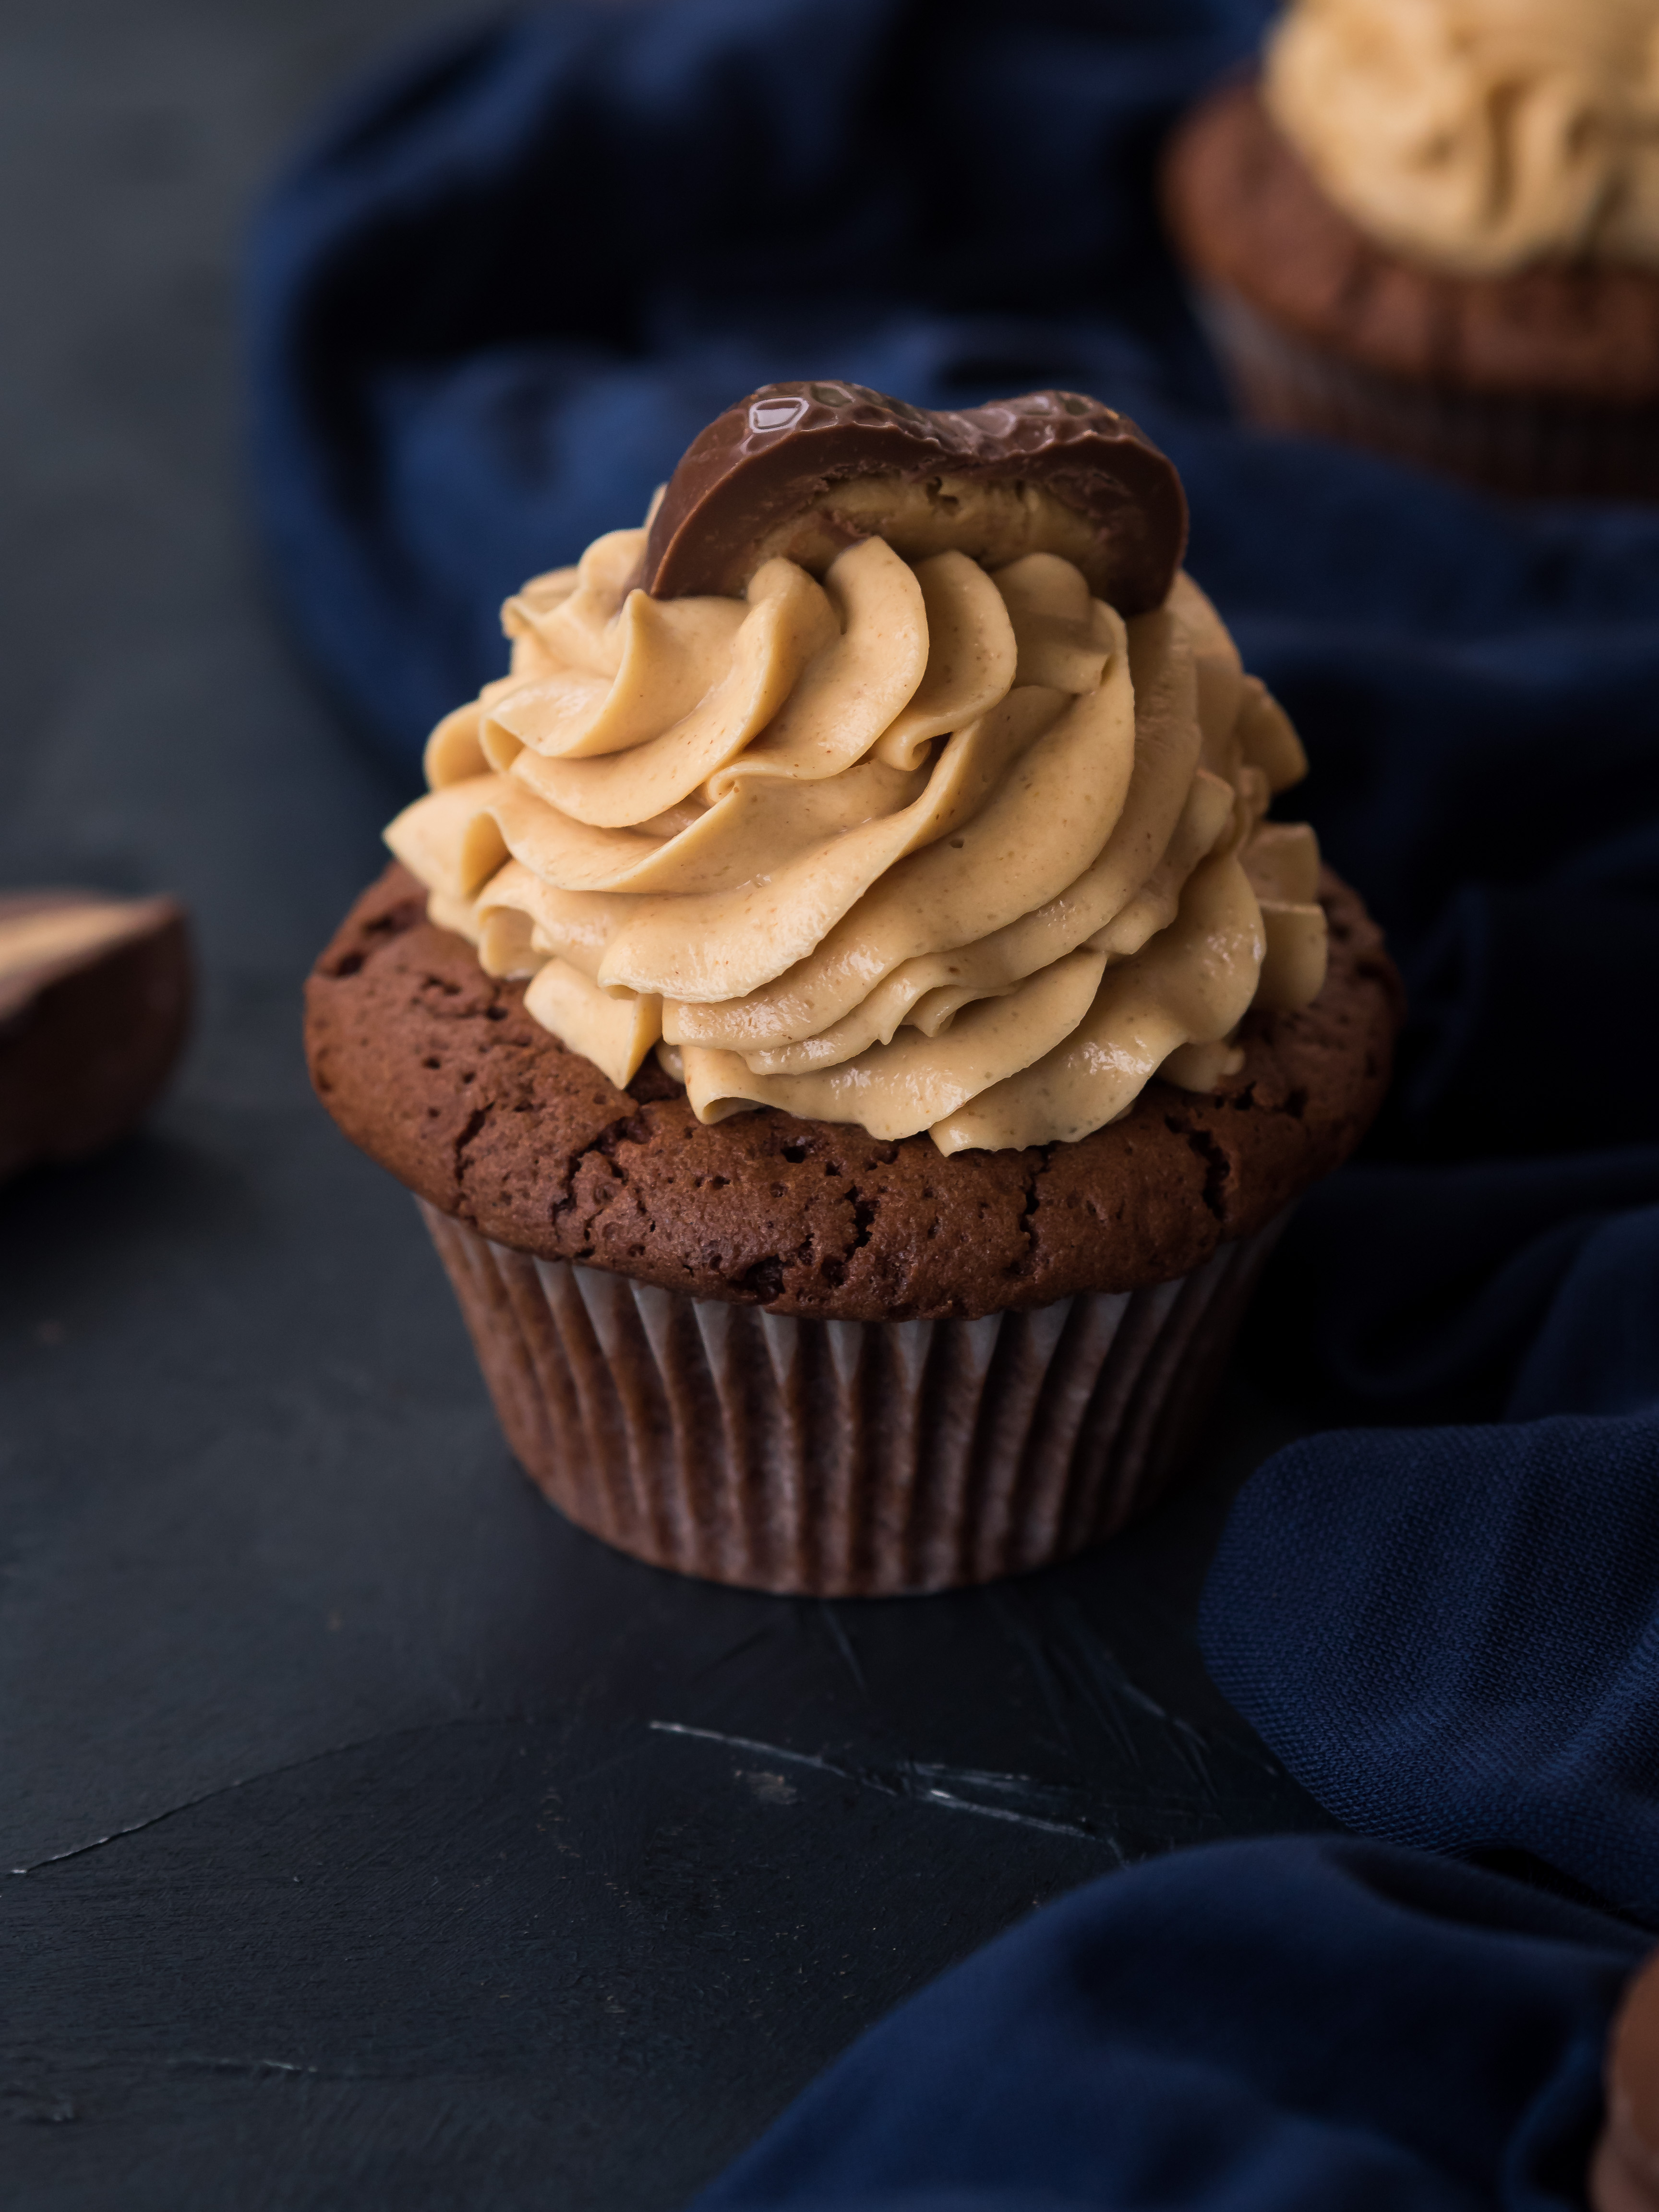 Peanutbutter Cupcakes